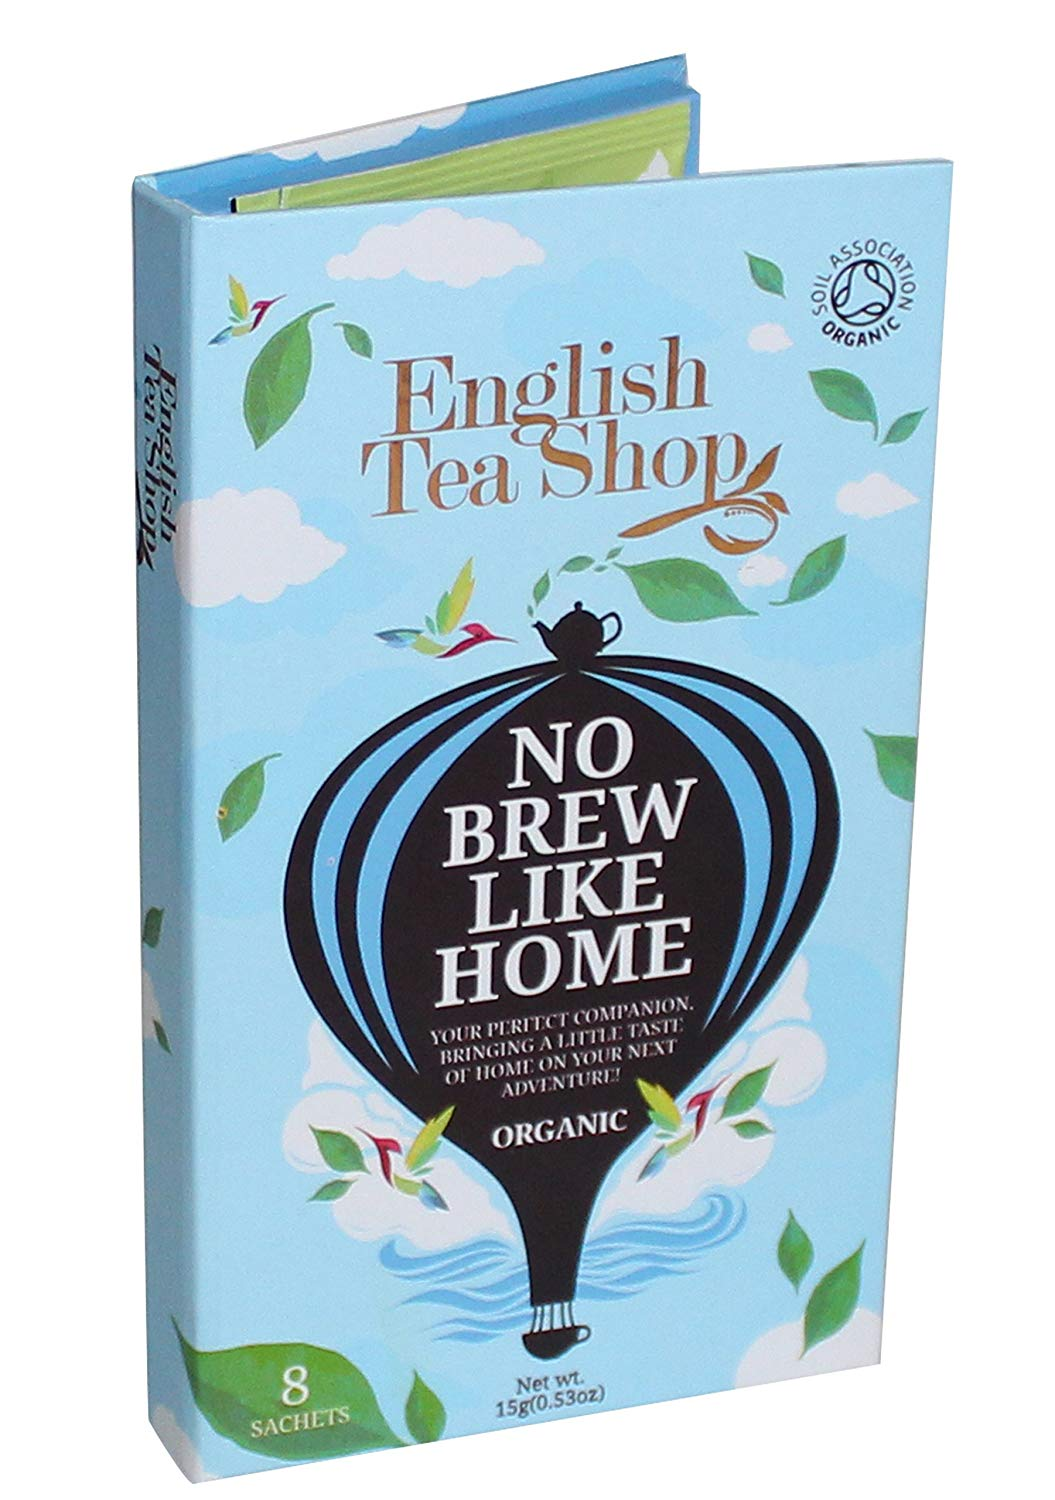 English Tea Shop Sachets Blue Traveller Pack 8ct